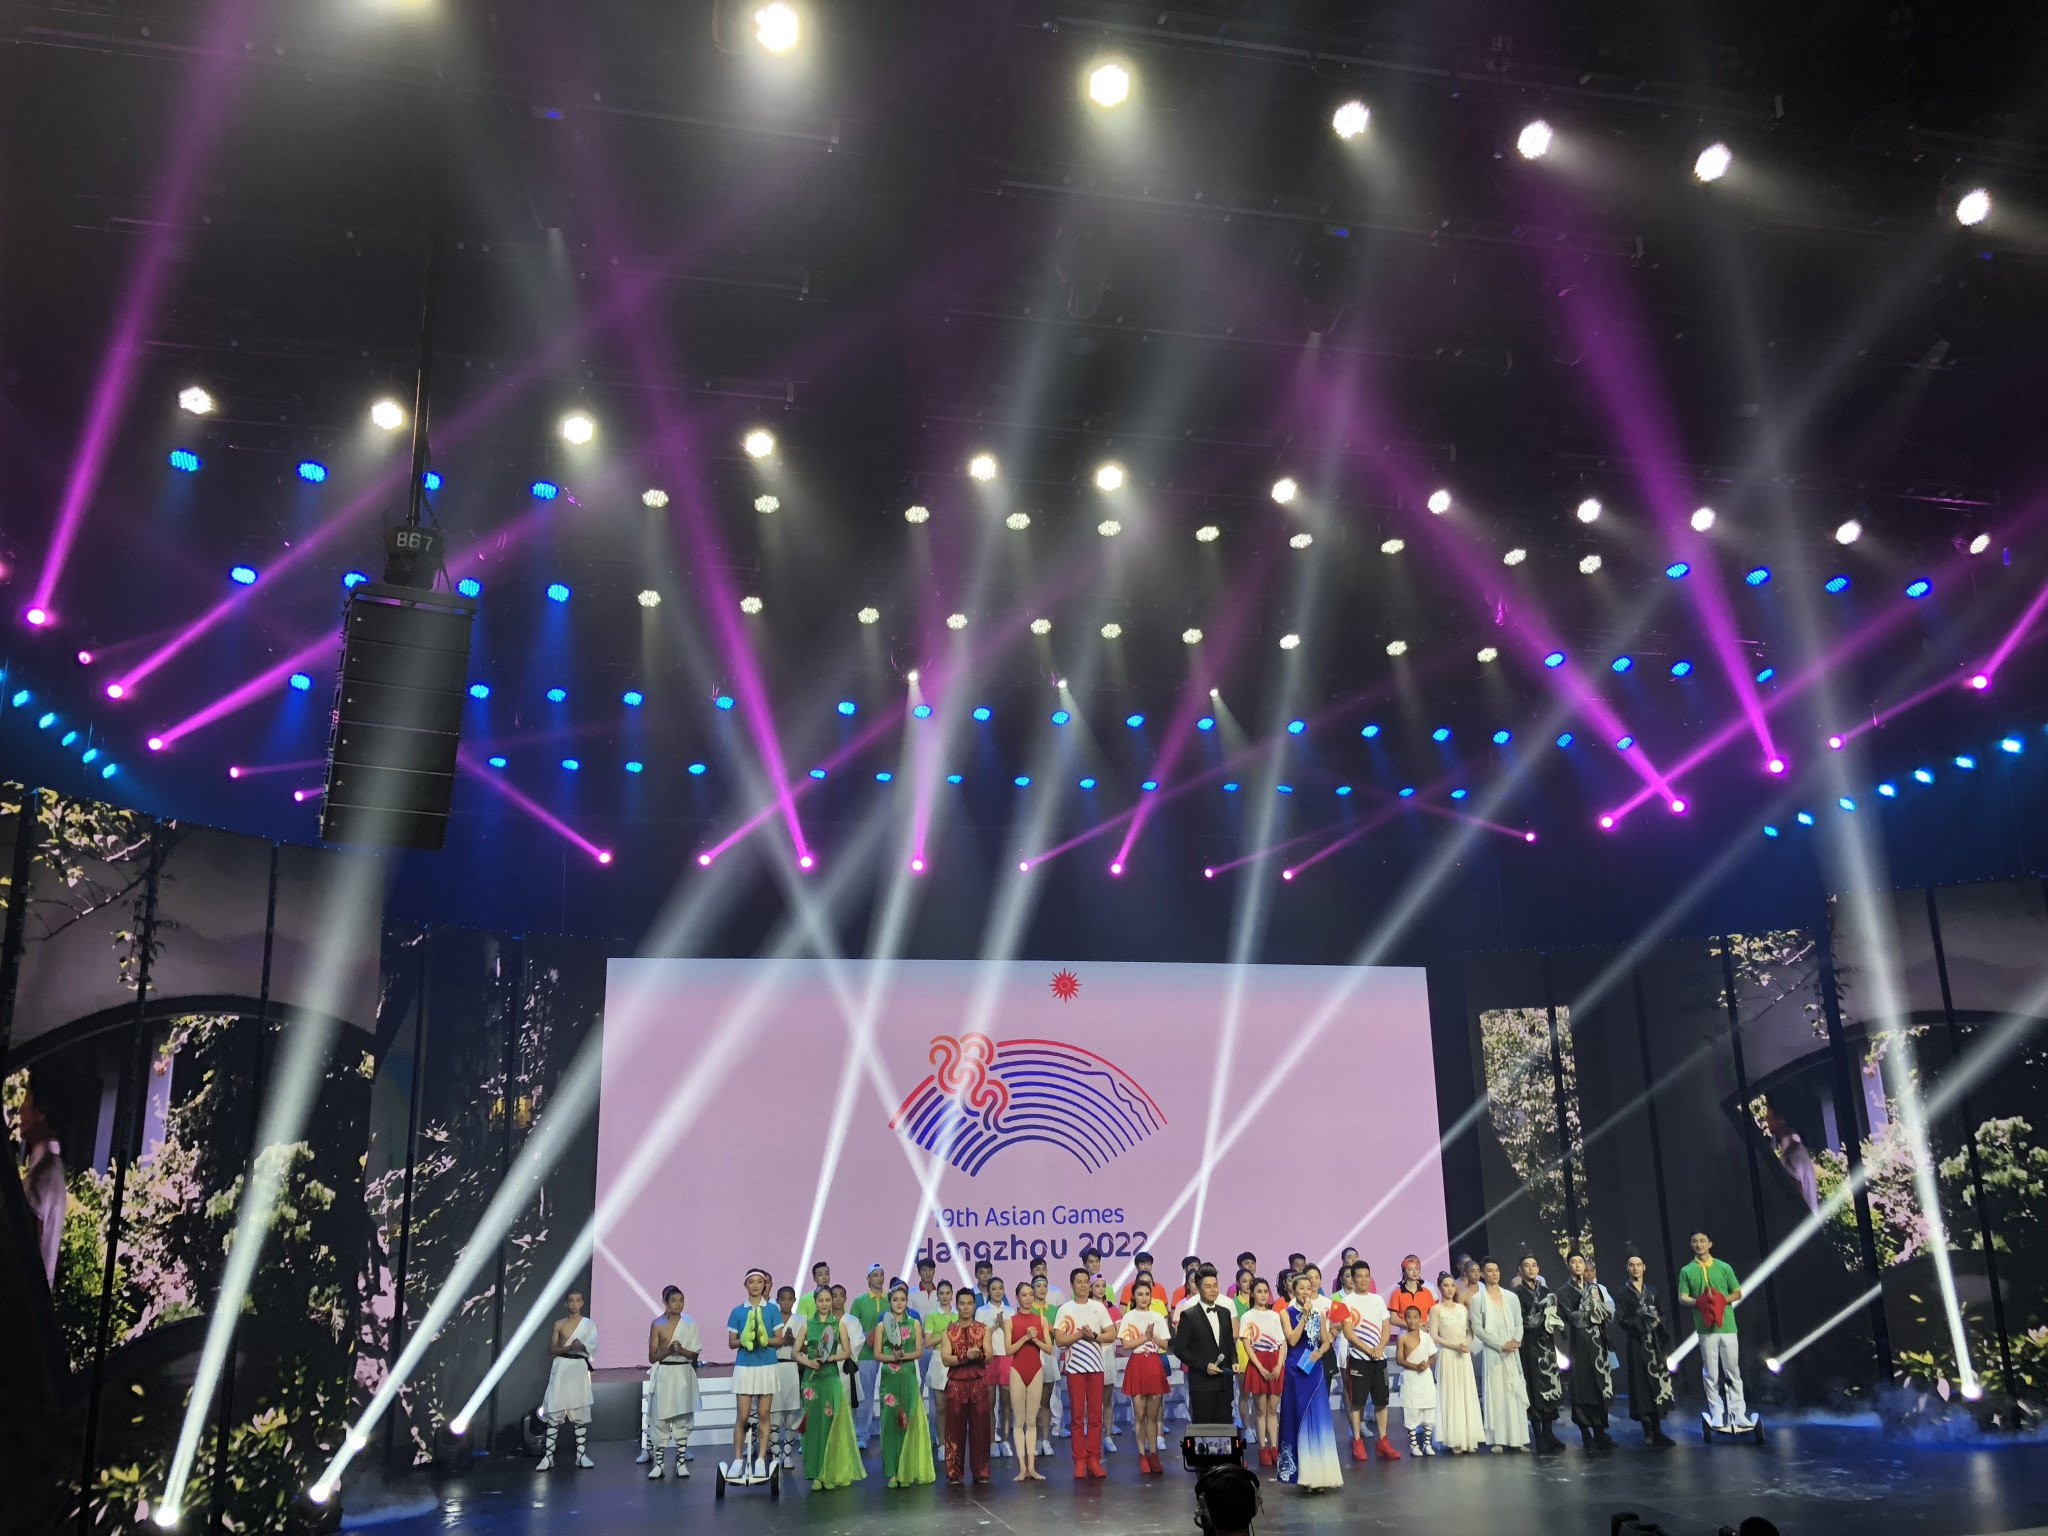 The Organising Committee of the 2022 Asian Games has begun searching for official sponsors ©OCA